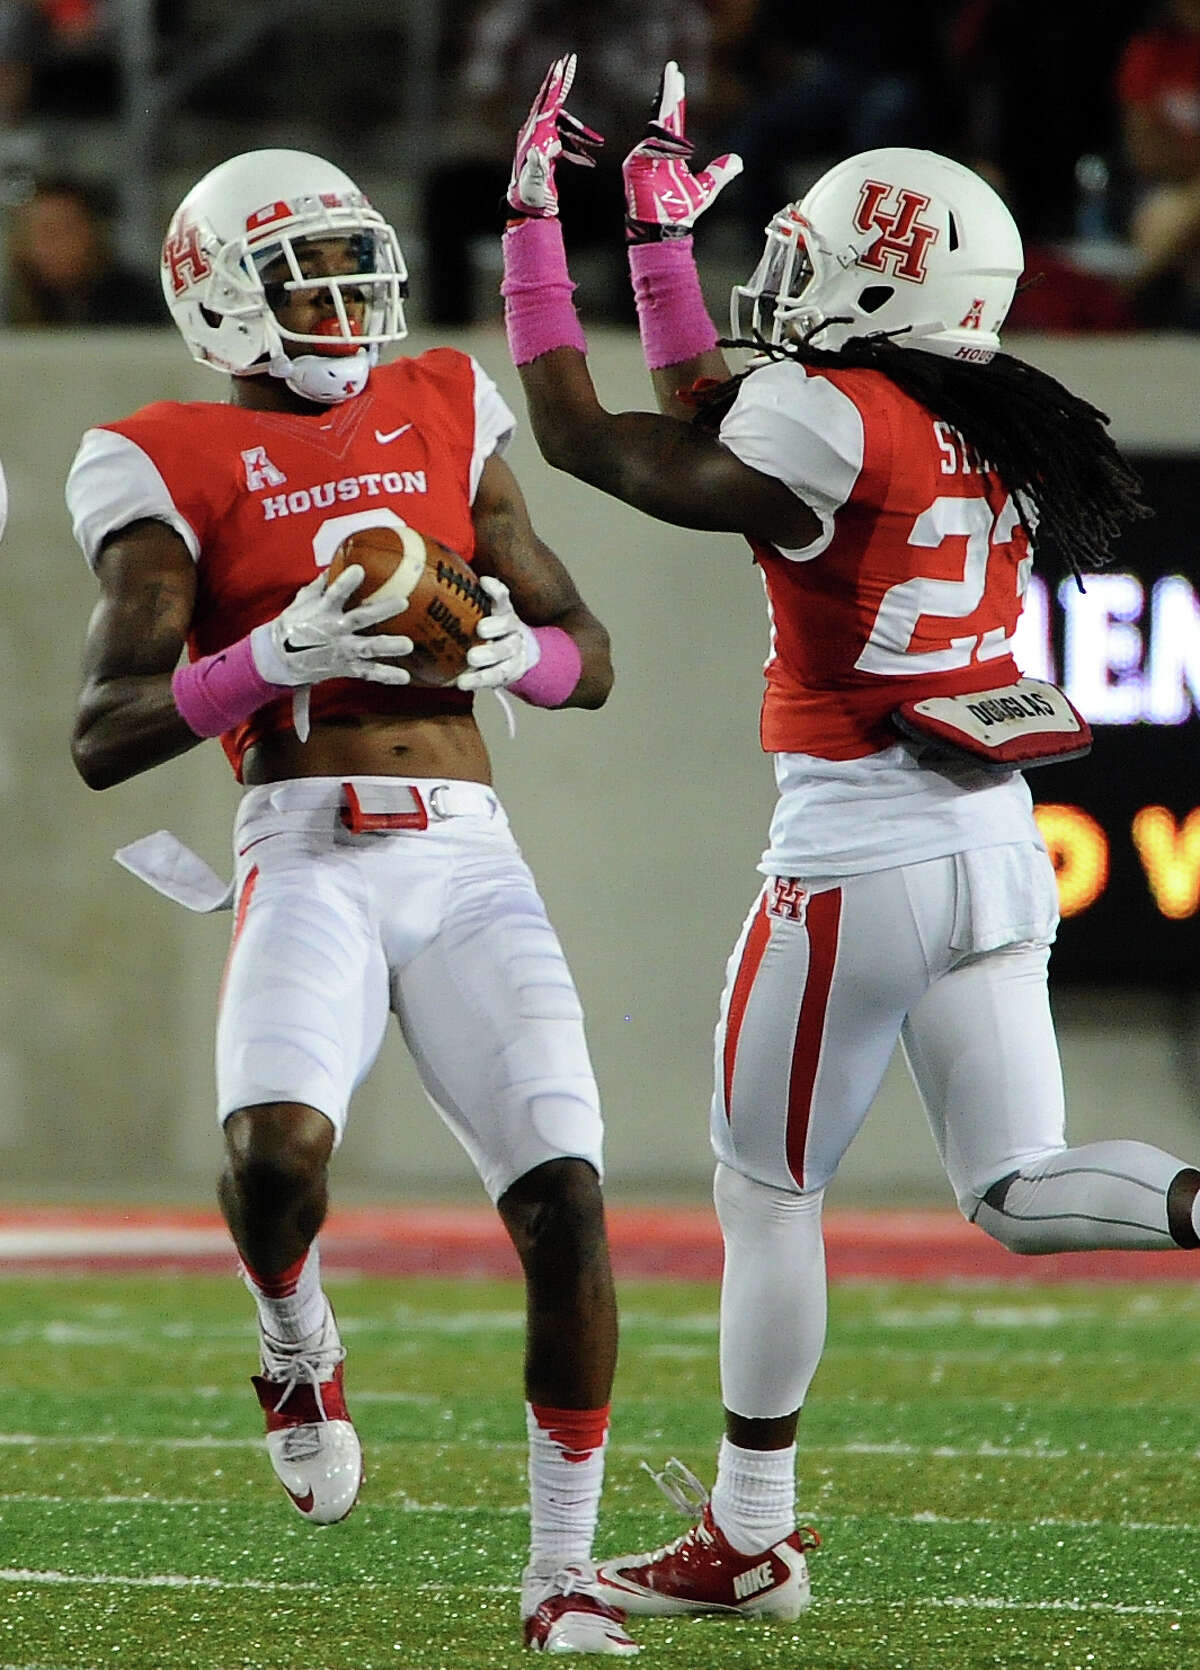 Houston defensive back William Jackson, left, celebrates his interception of Temple quarterback P.J. Walker with Trevon Stewart during the first half of a college football game, Friday, October 17, 2014, at TDECU Stadium in Houston.